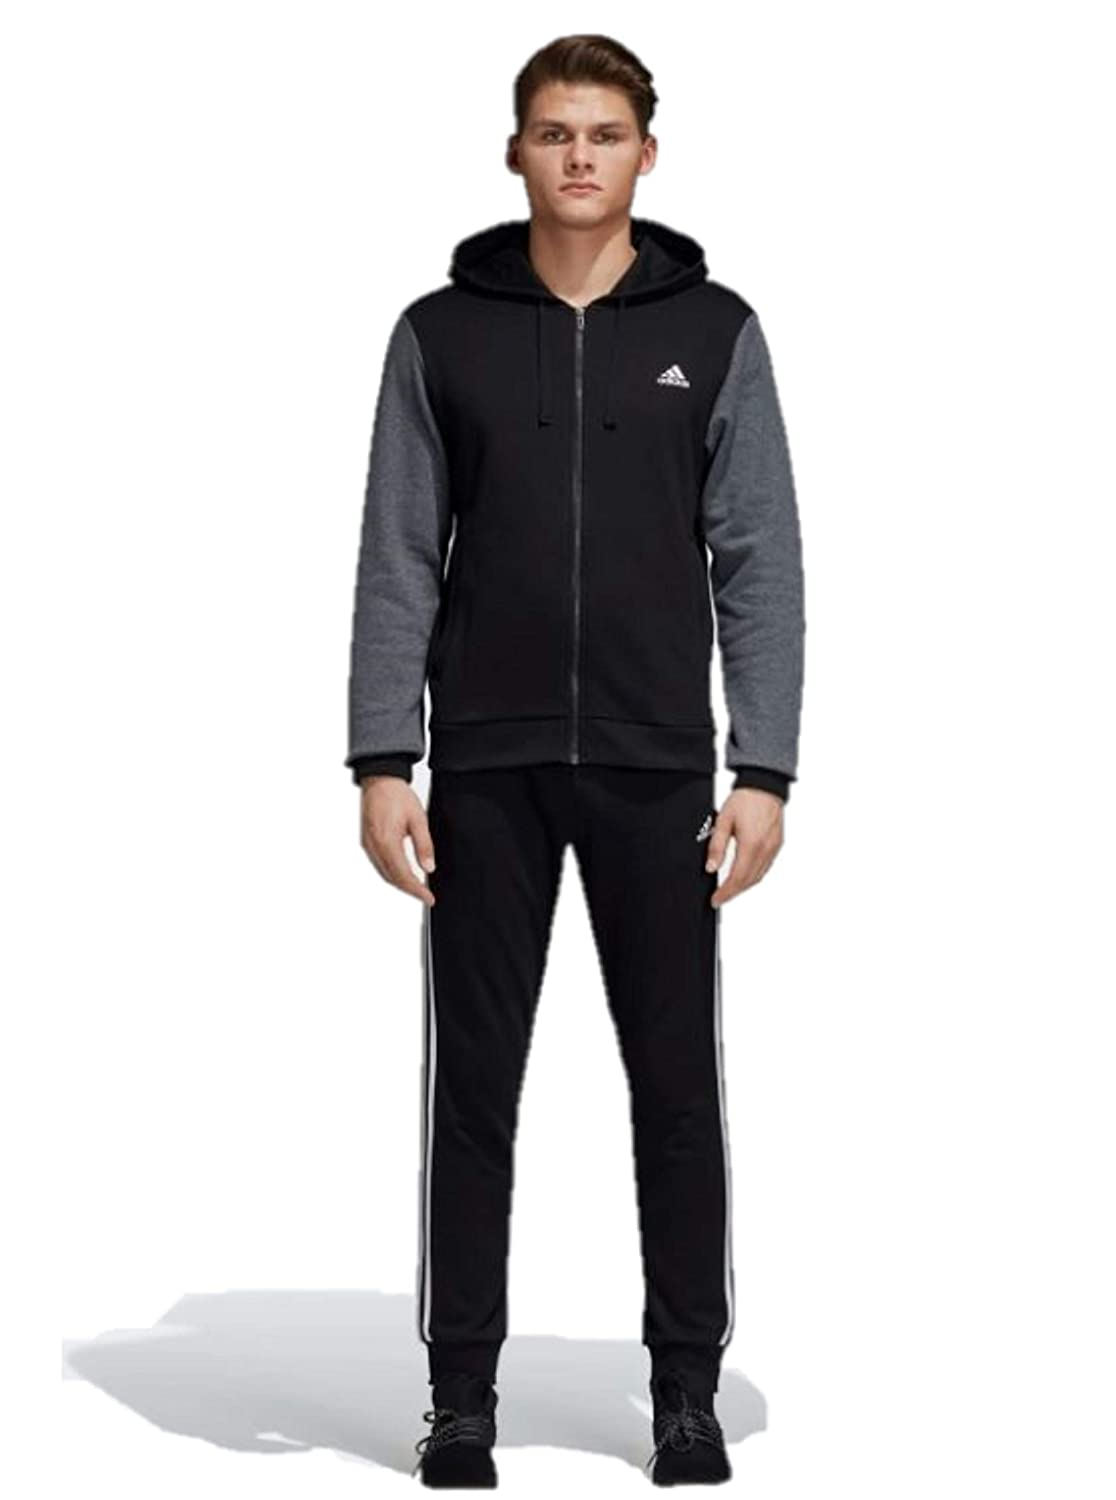 Image of Active Tracksuits Adidas Men's Energize Track Suit 3 Stripes Hoodie Tracksuit Blue/Black